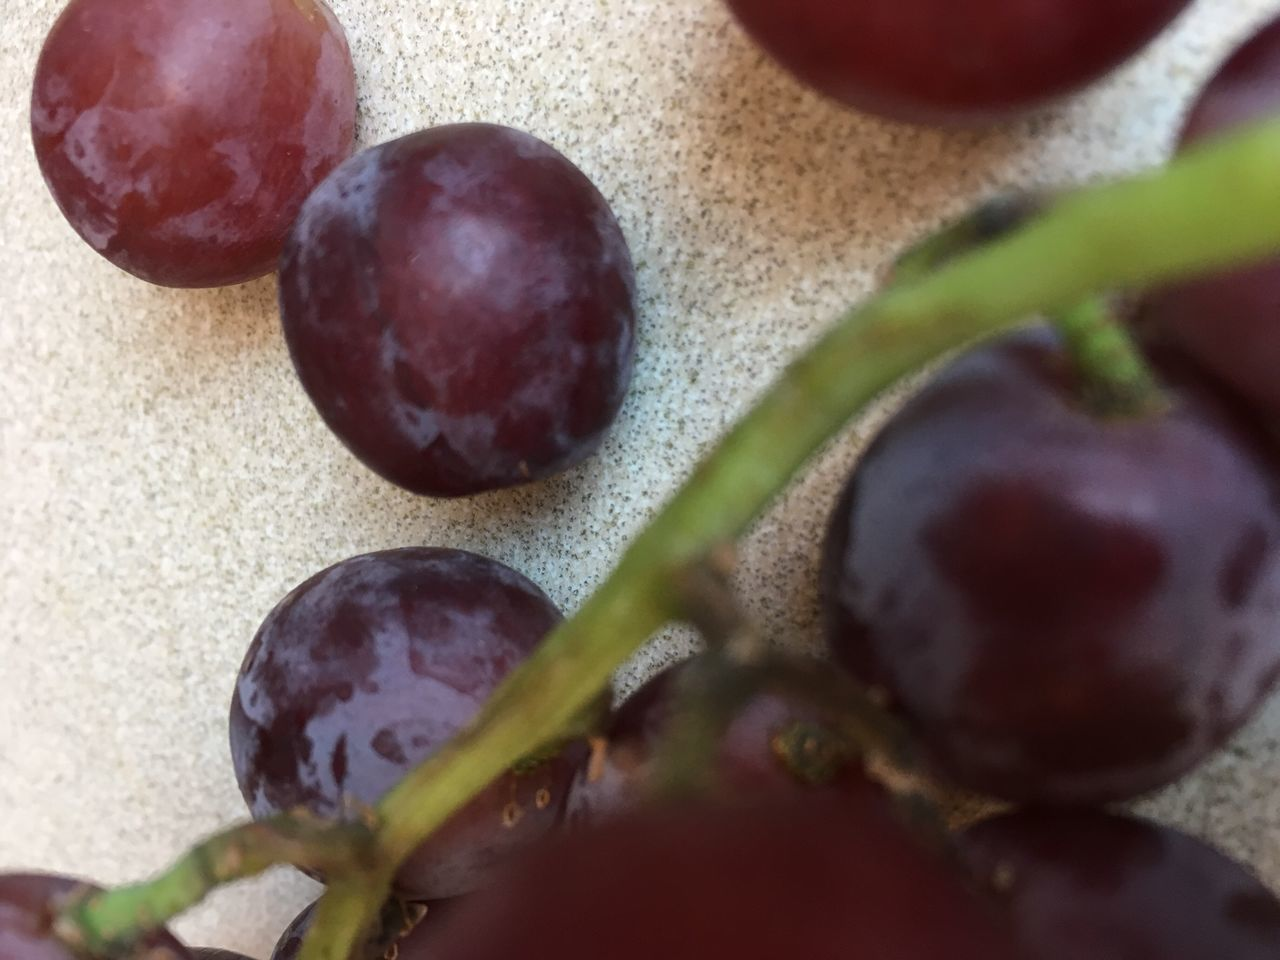 Grapes Food And Drink Close-up Fruit Indoors  Freshness Healthy Eating